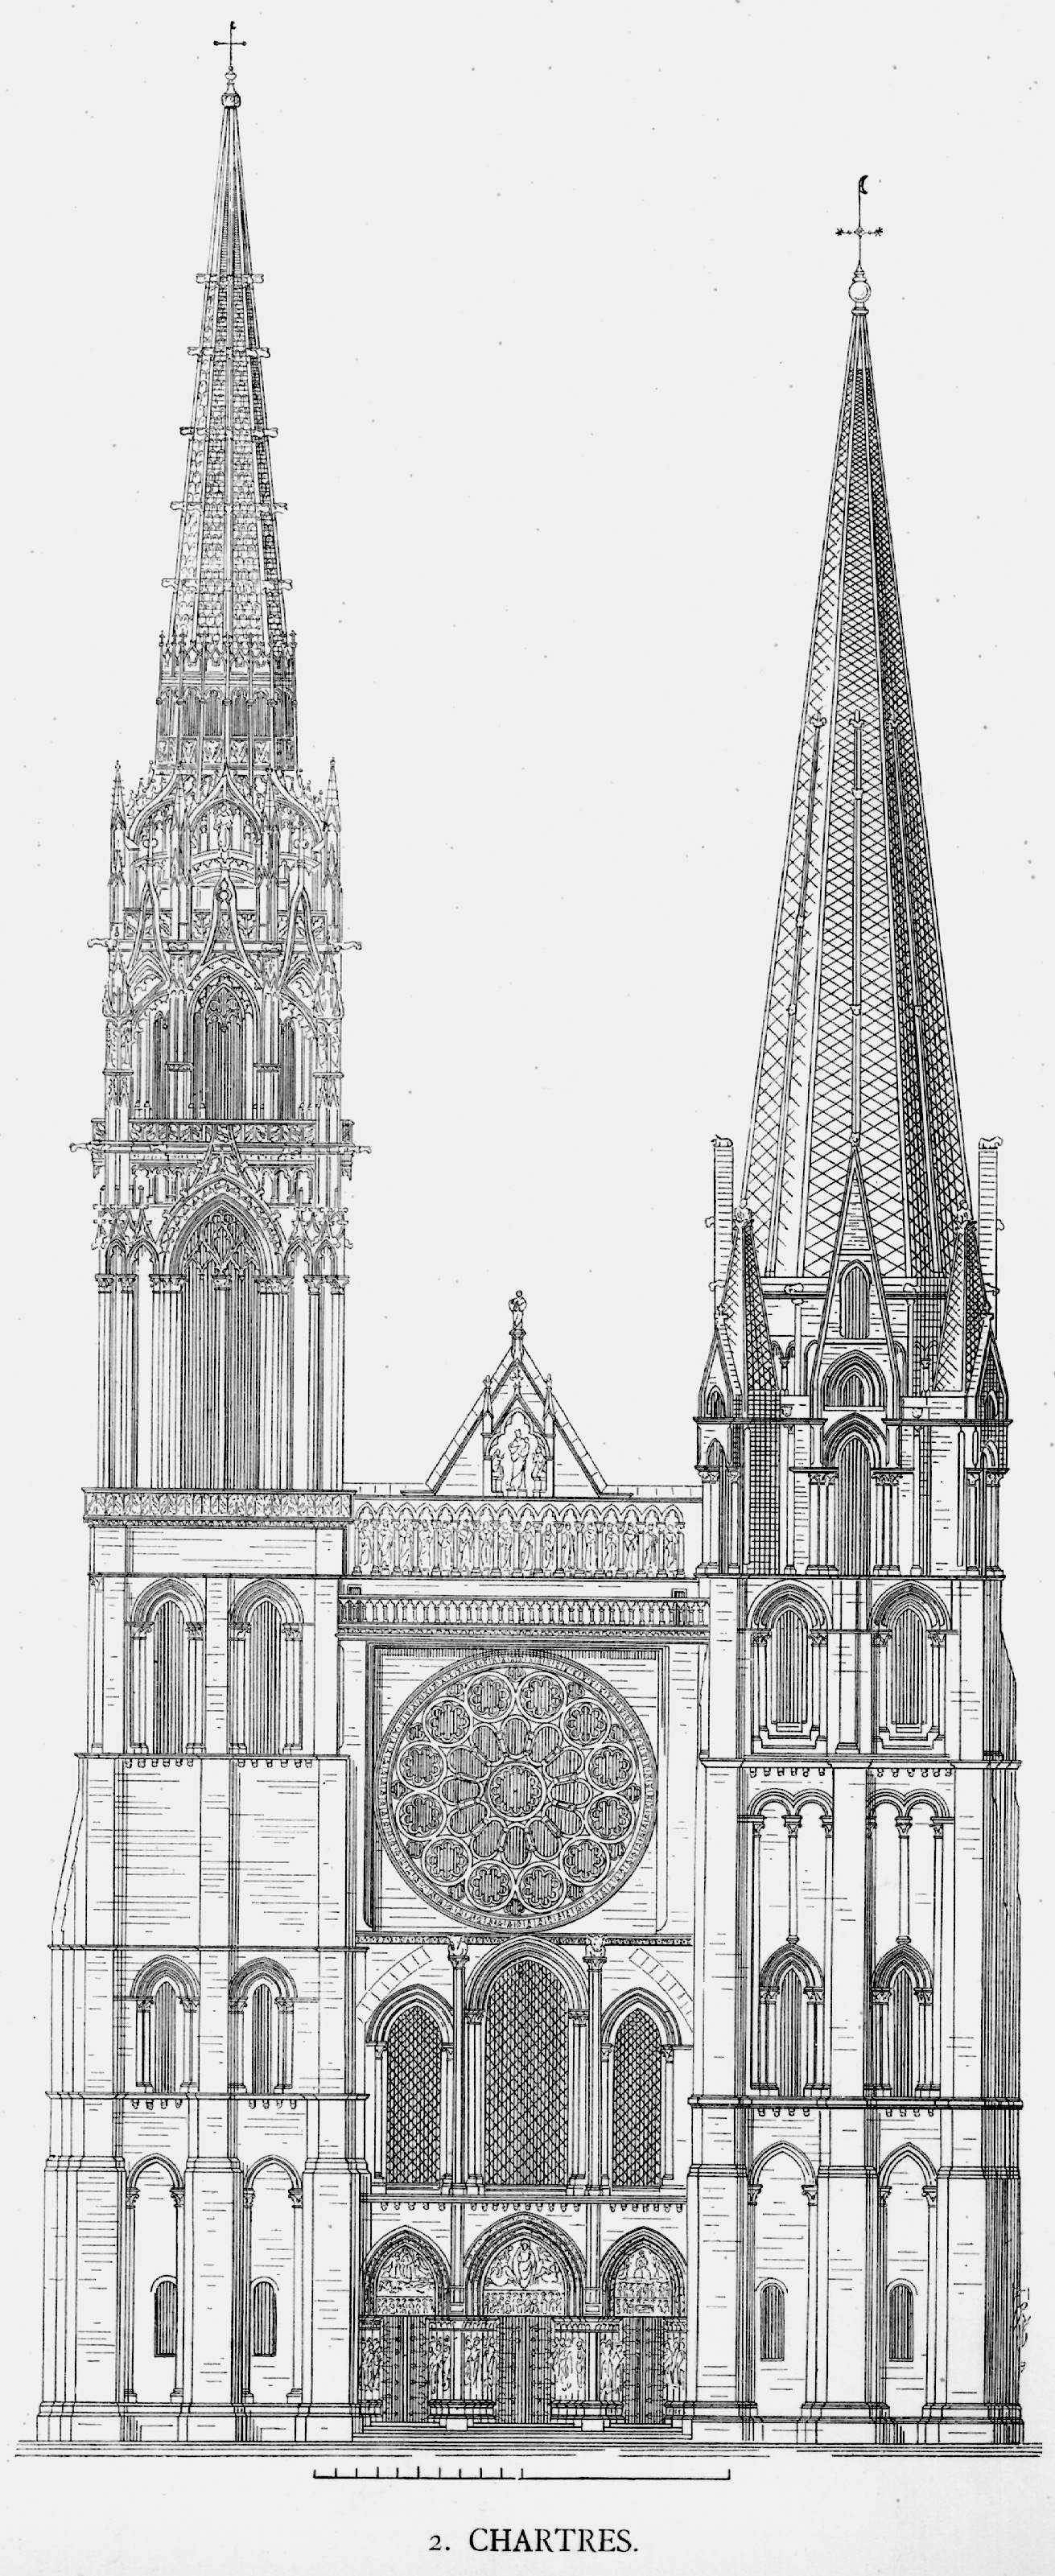 CATHEDRAL OF NOTRE DAME CHARTRES PLANS AND DRAWINGS